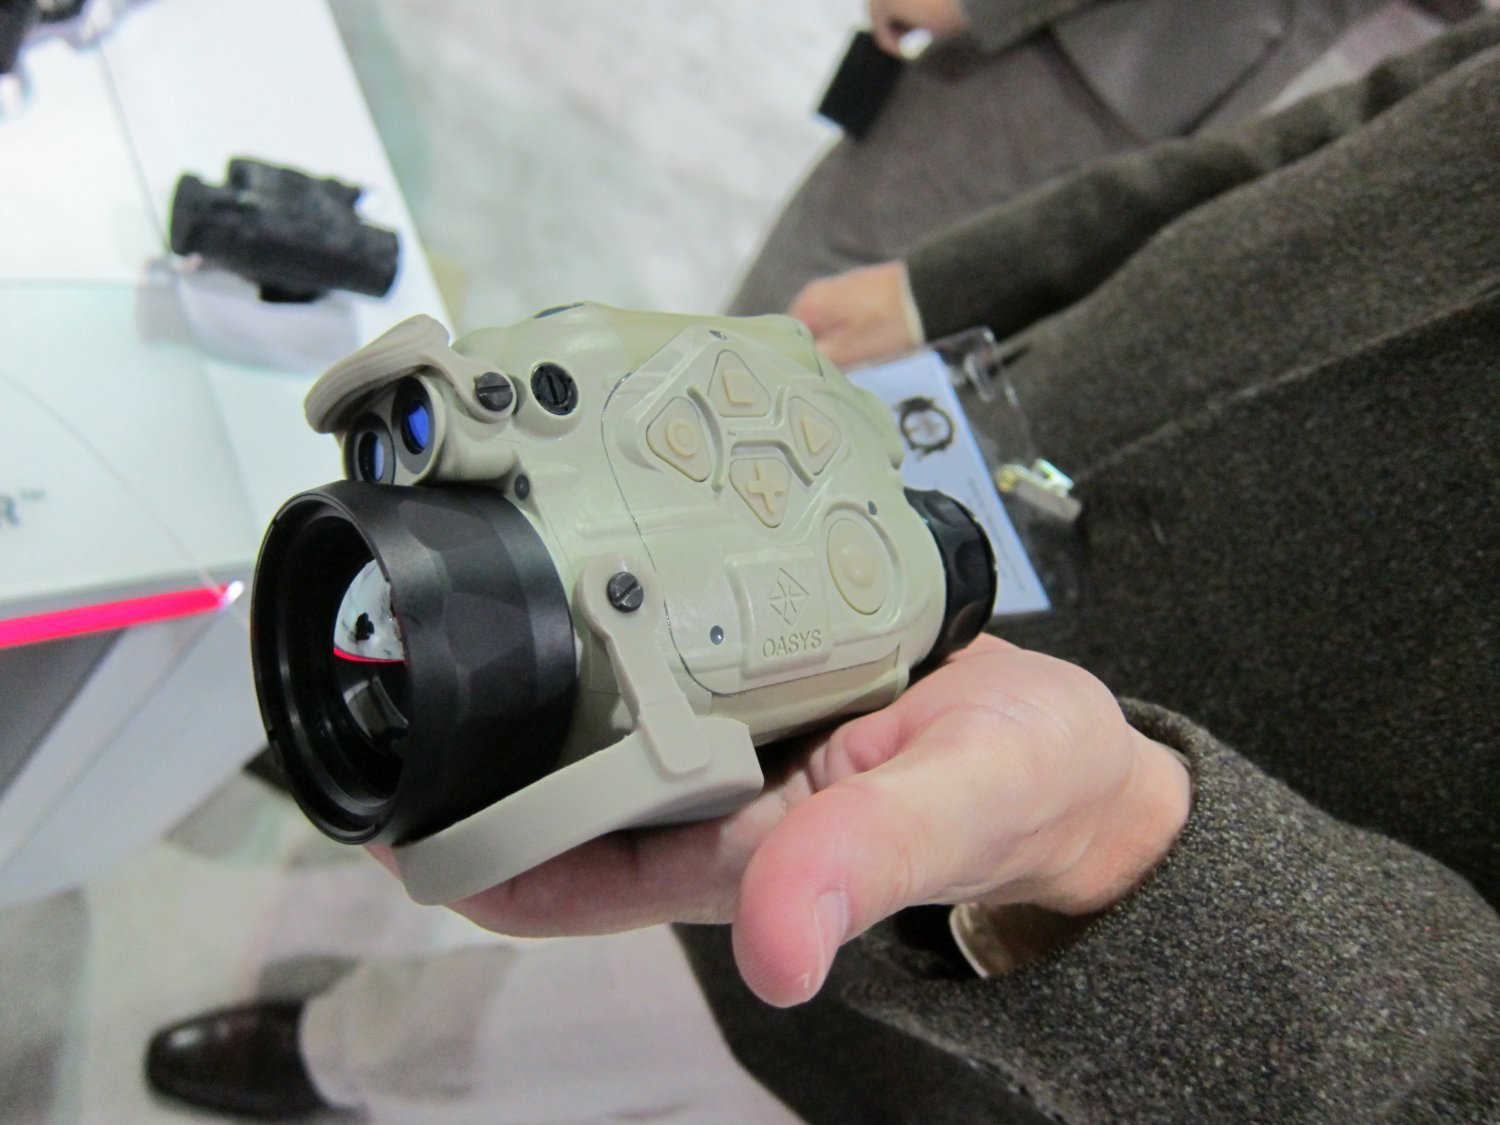 <!--:en-->DR Video and Interview!: BAE Systems OASYS SkeetIR and StalkIR Universal Thermal Monocular (UTM) Thermal/IR (Infrared) Weapon Sights with Cantilevered Universal Weapons Mount (UWM) and Modular Night Vision (NV)/IR Fusion HMD Capability!: Operator/Sniper-Developed Electro-Optics for the 21st-Century Future Soldier/Warfighter<!--:-->